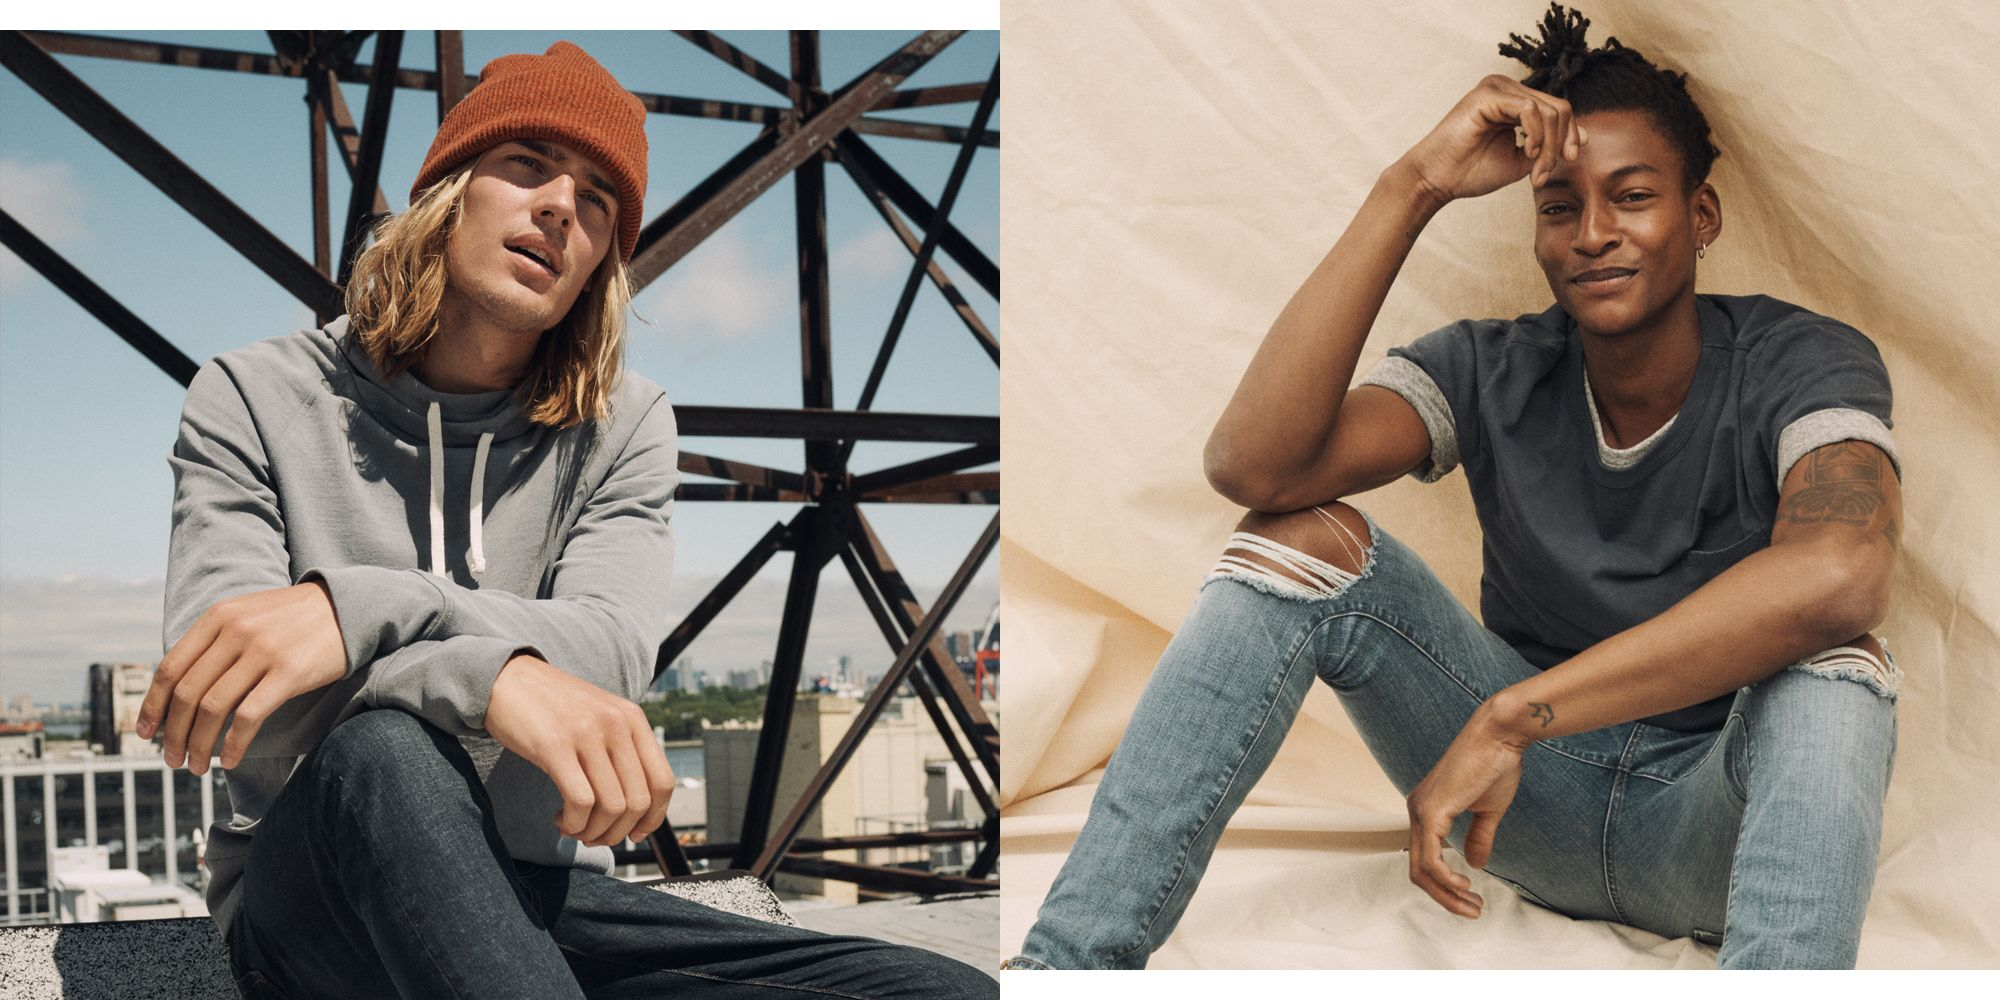 J.Crew's Younger, Denim-Centric Sibling Just Launched Menswear